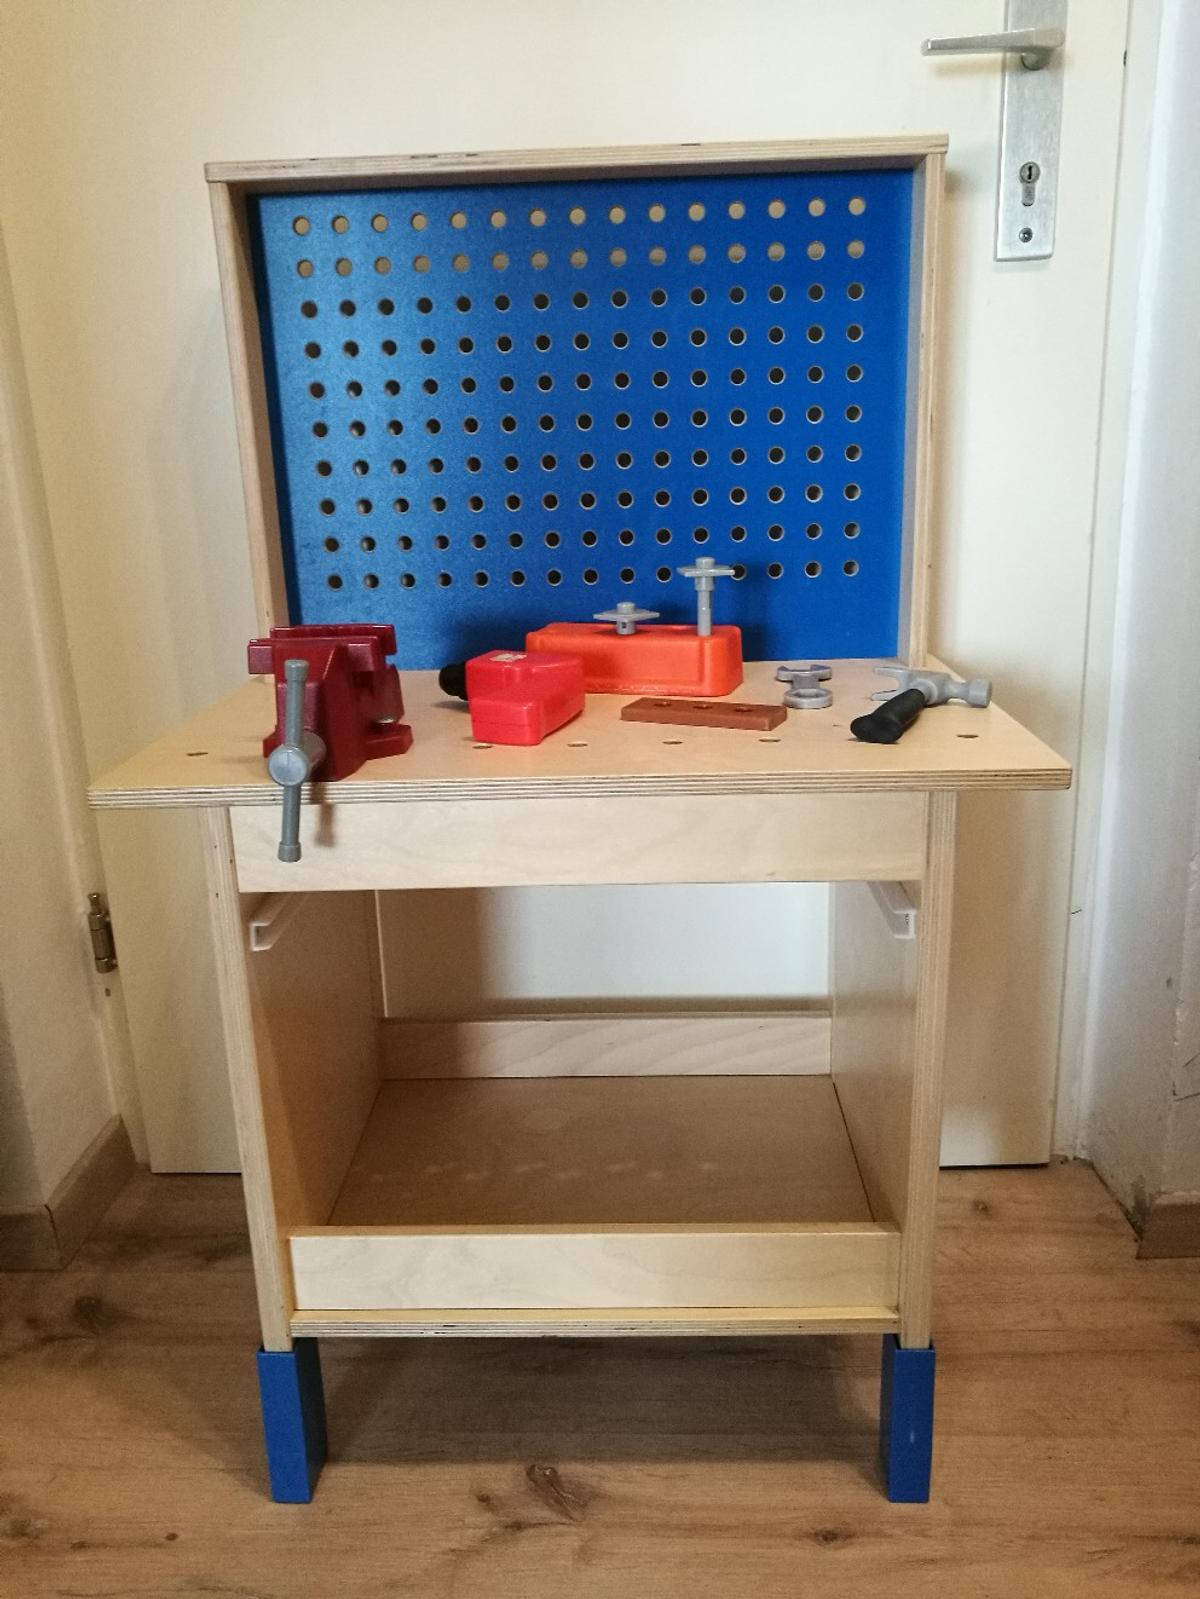 Top IKEA Kinder Werkbank DUKTIG Holz in 4040 Linz for €20.00 for sale FV44